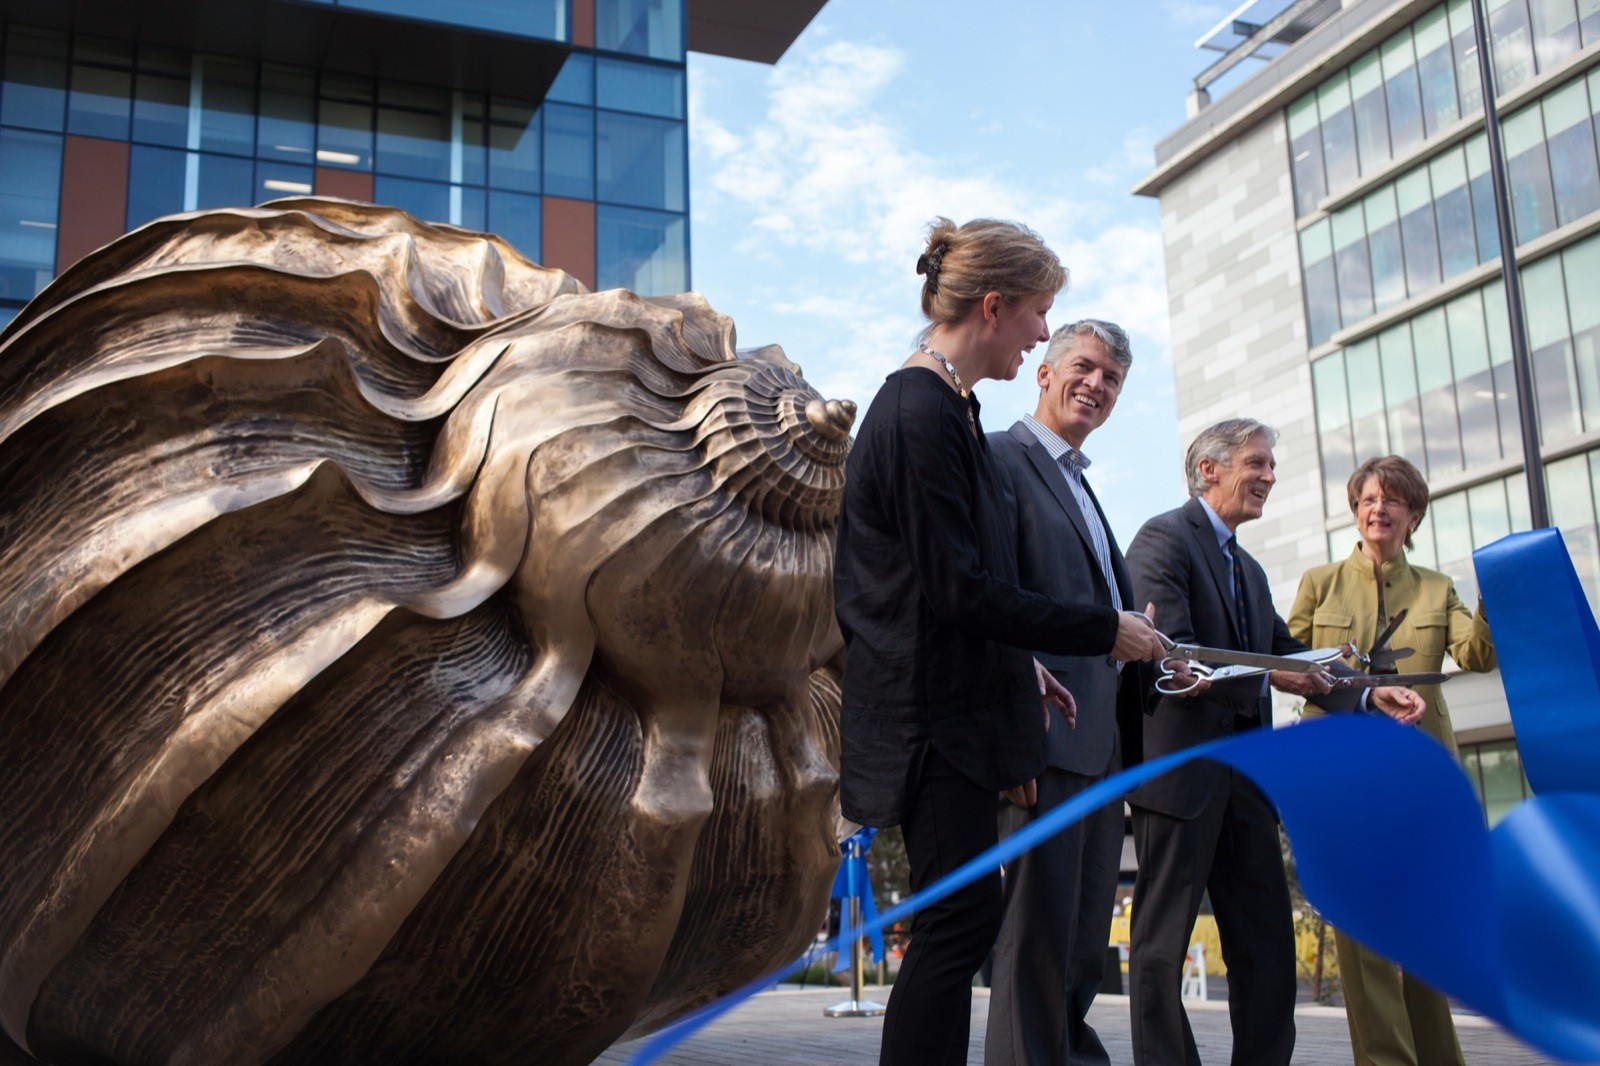 Four people cutting a large ribbon in front of a bronze shell